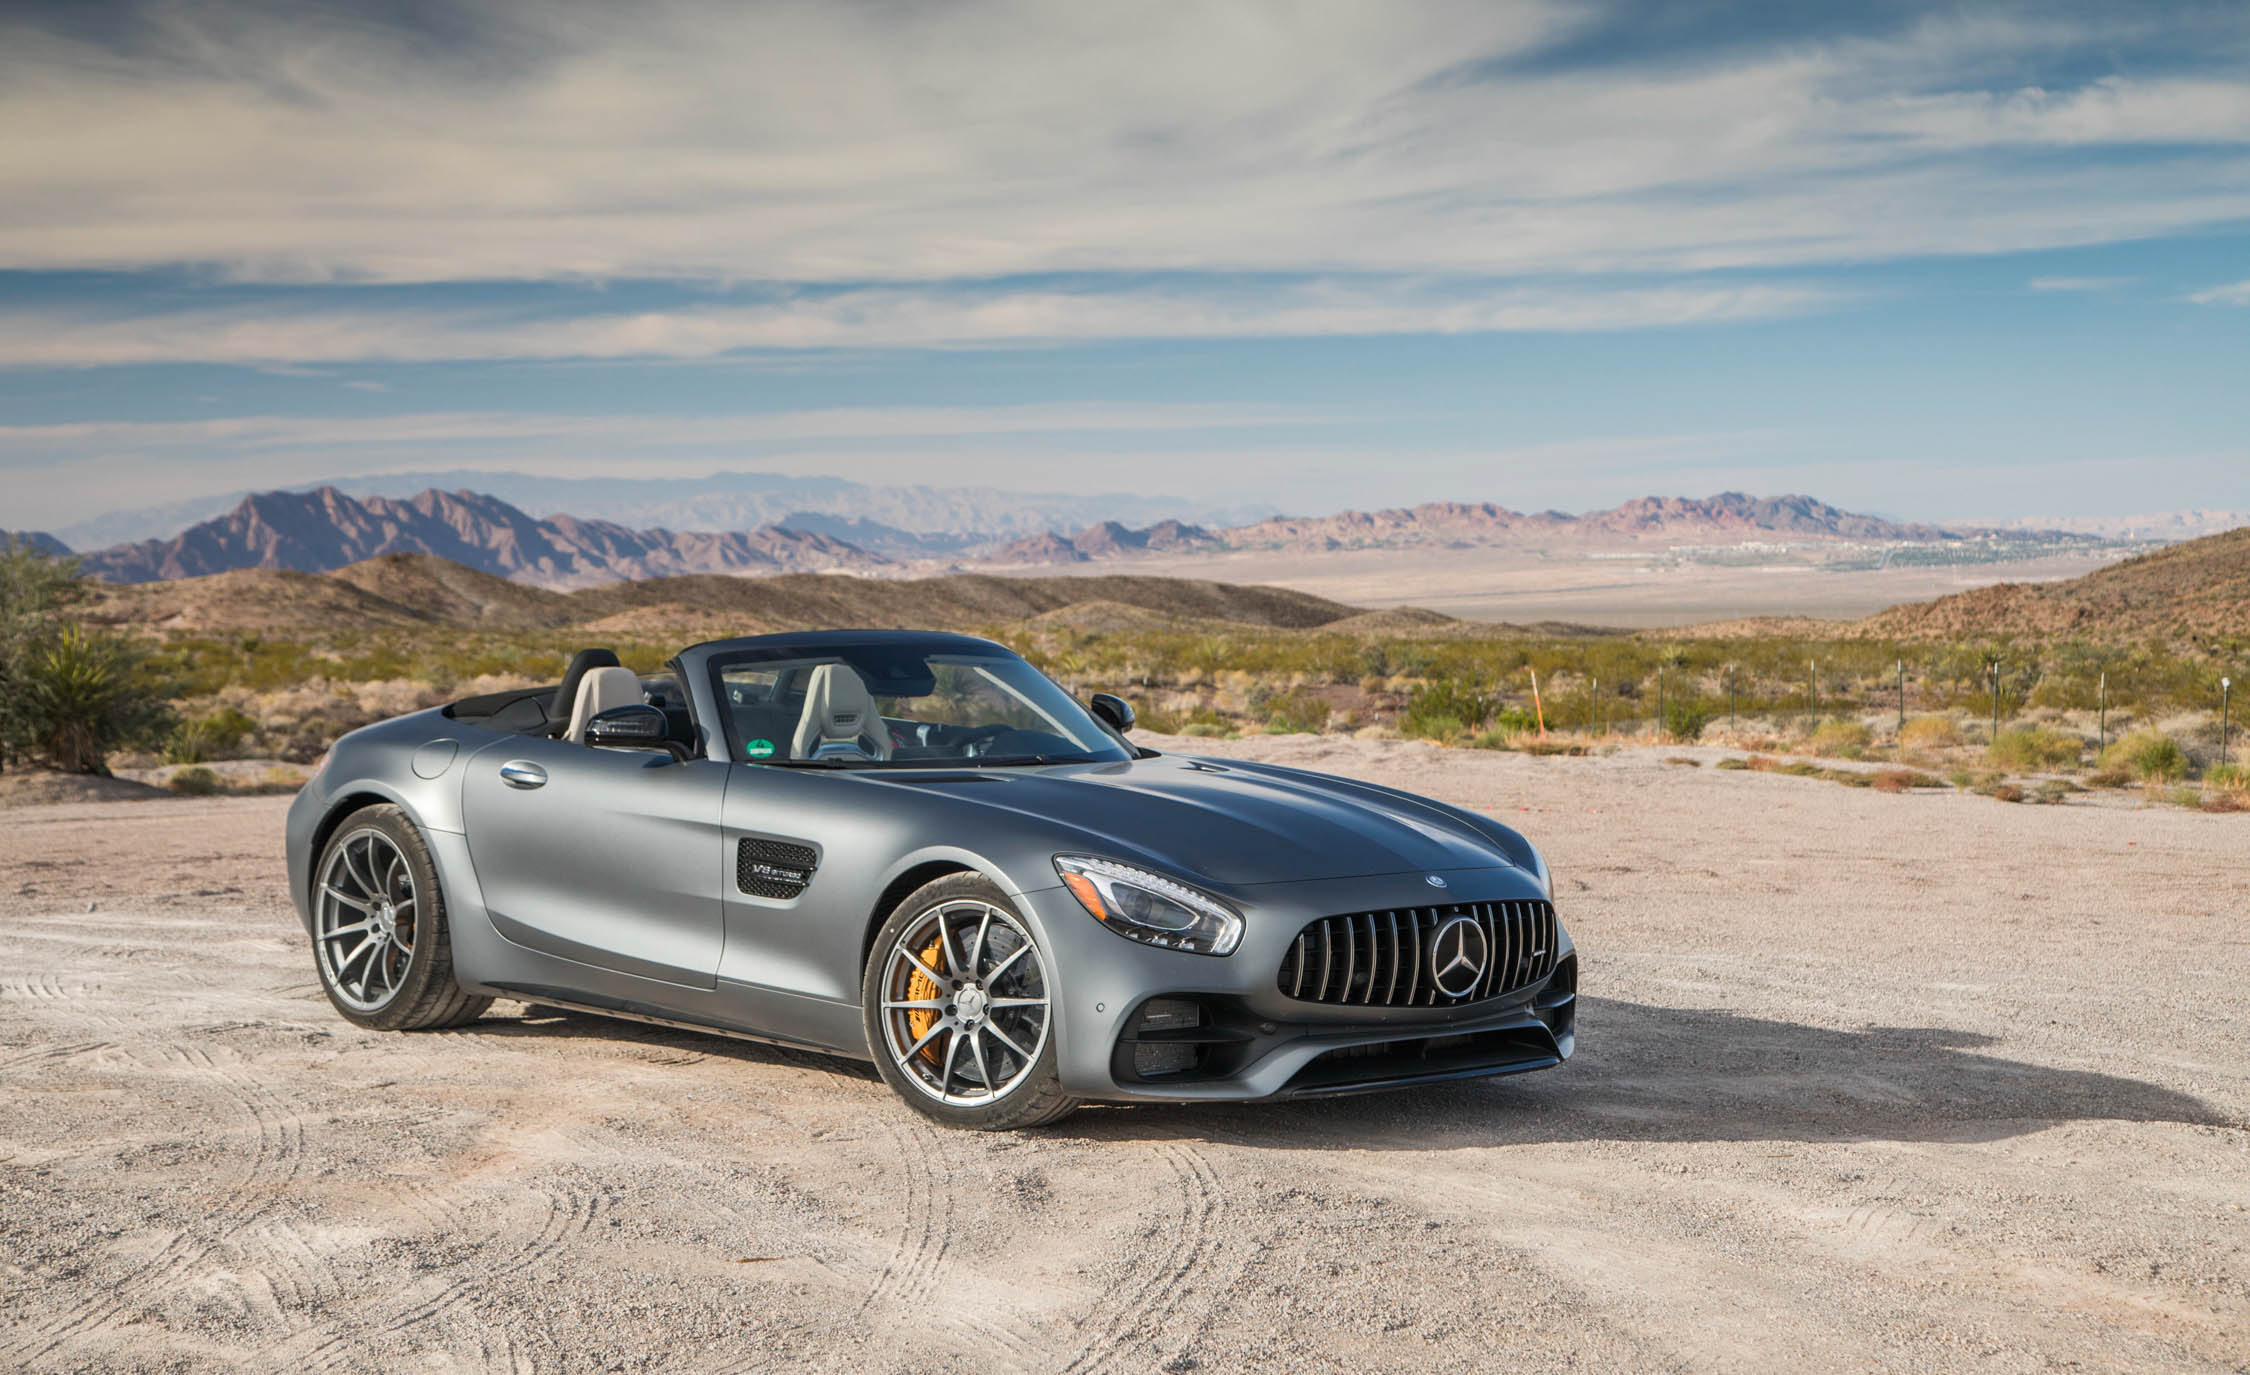 2018 mercedes amg gt roadster cars exclusive videos and for 2018 mercedes benz amg gt